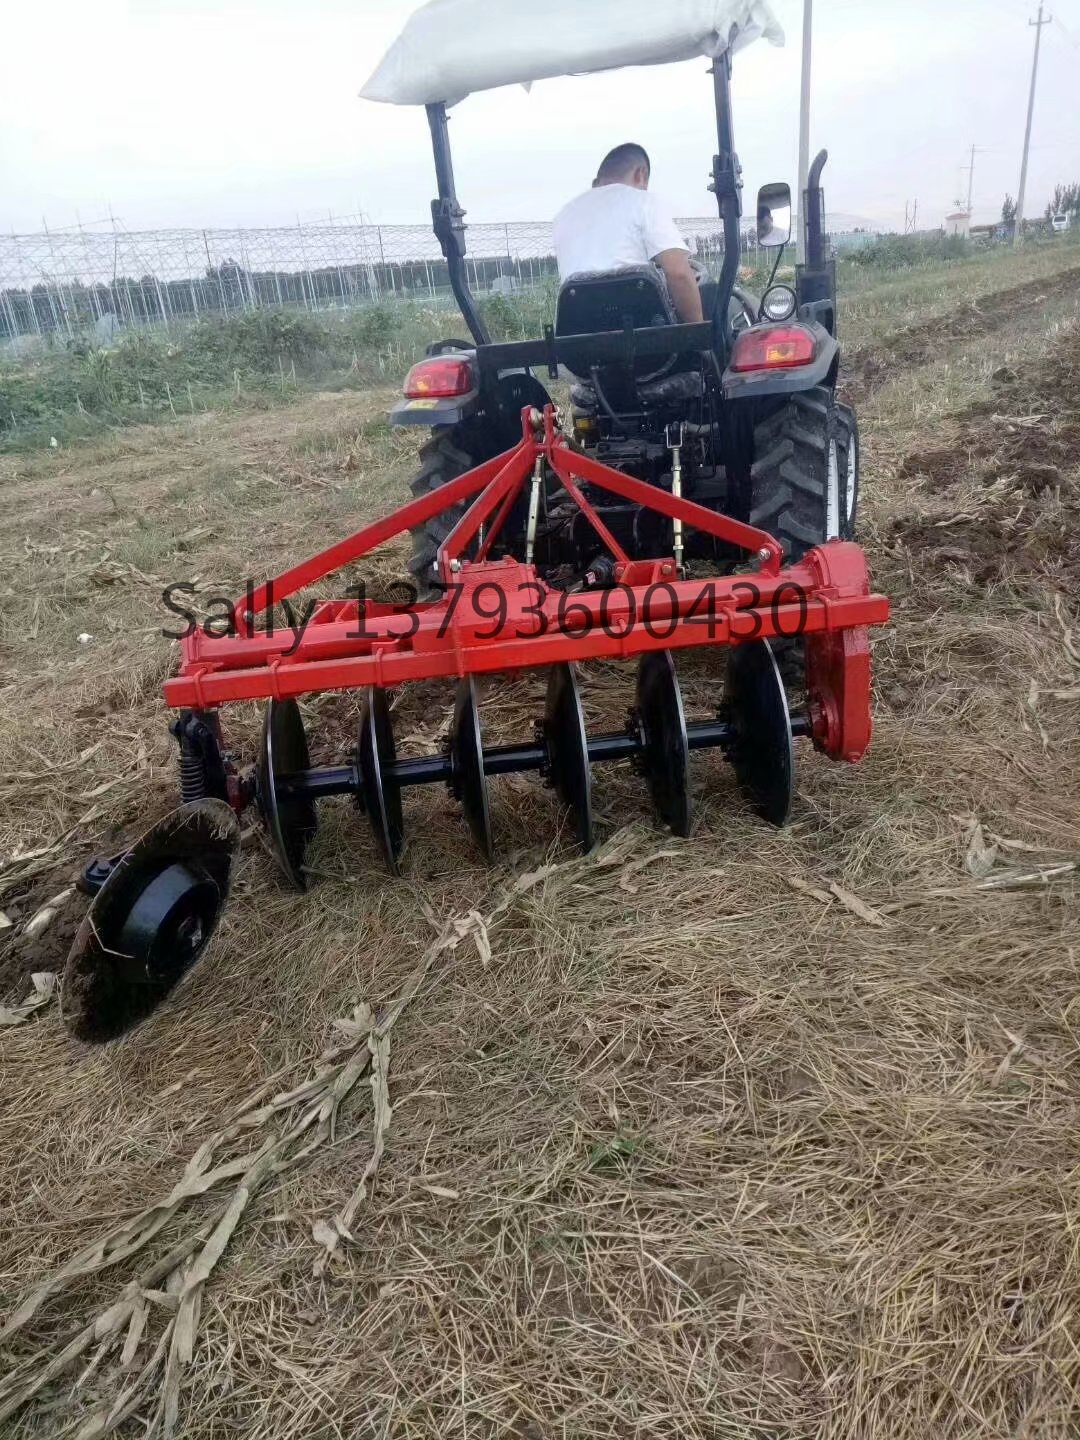 Plough  2019 model  weituo brand good price